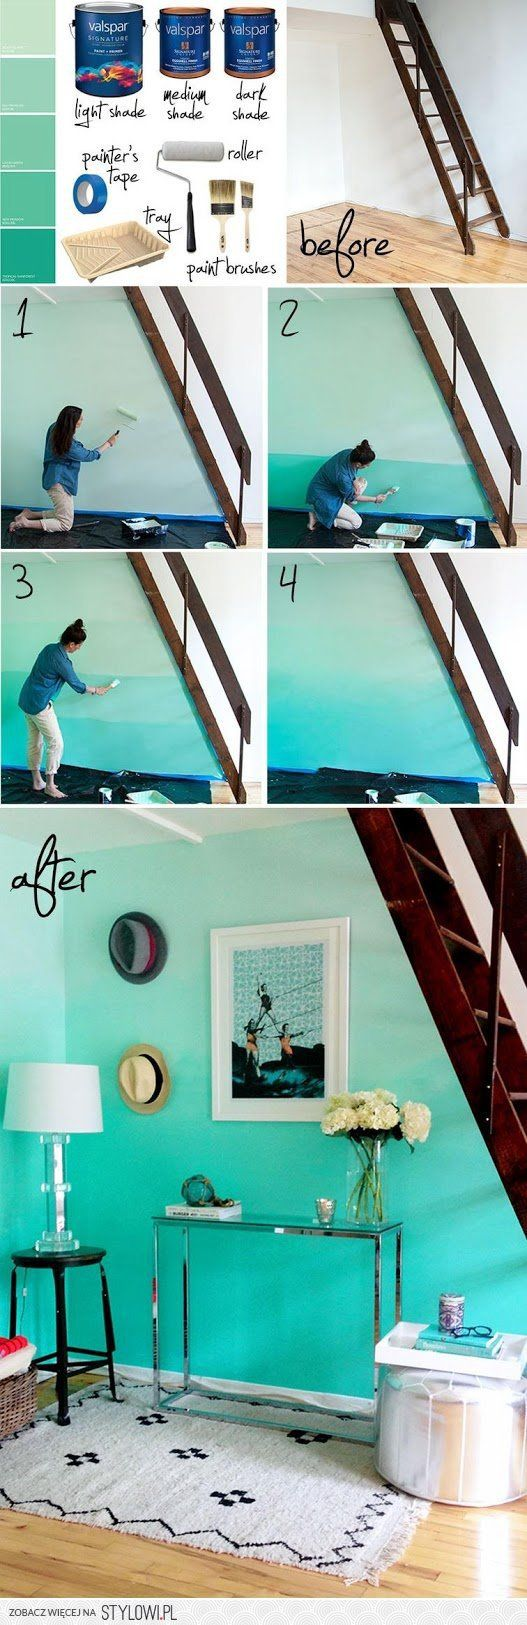 Ombre Walls: Painting Techniques, Designs and Ideas | House decor ...